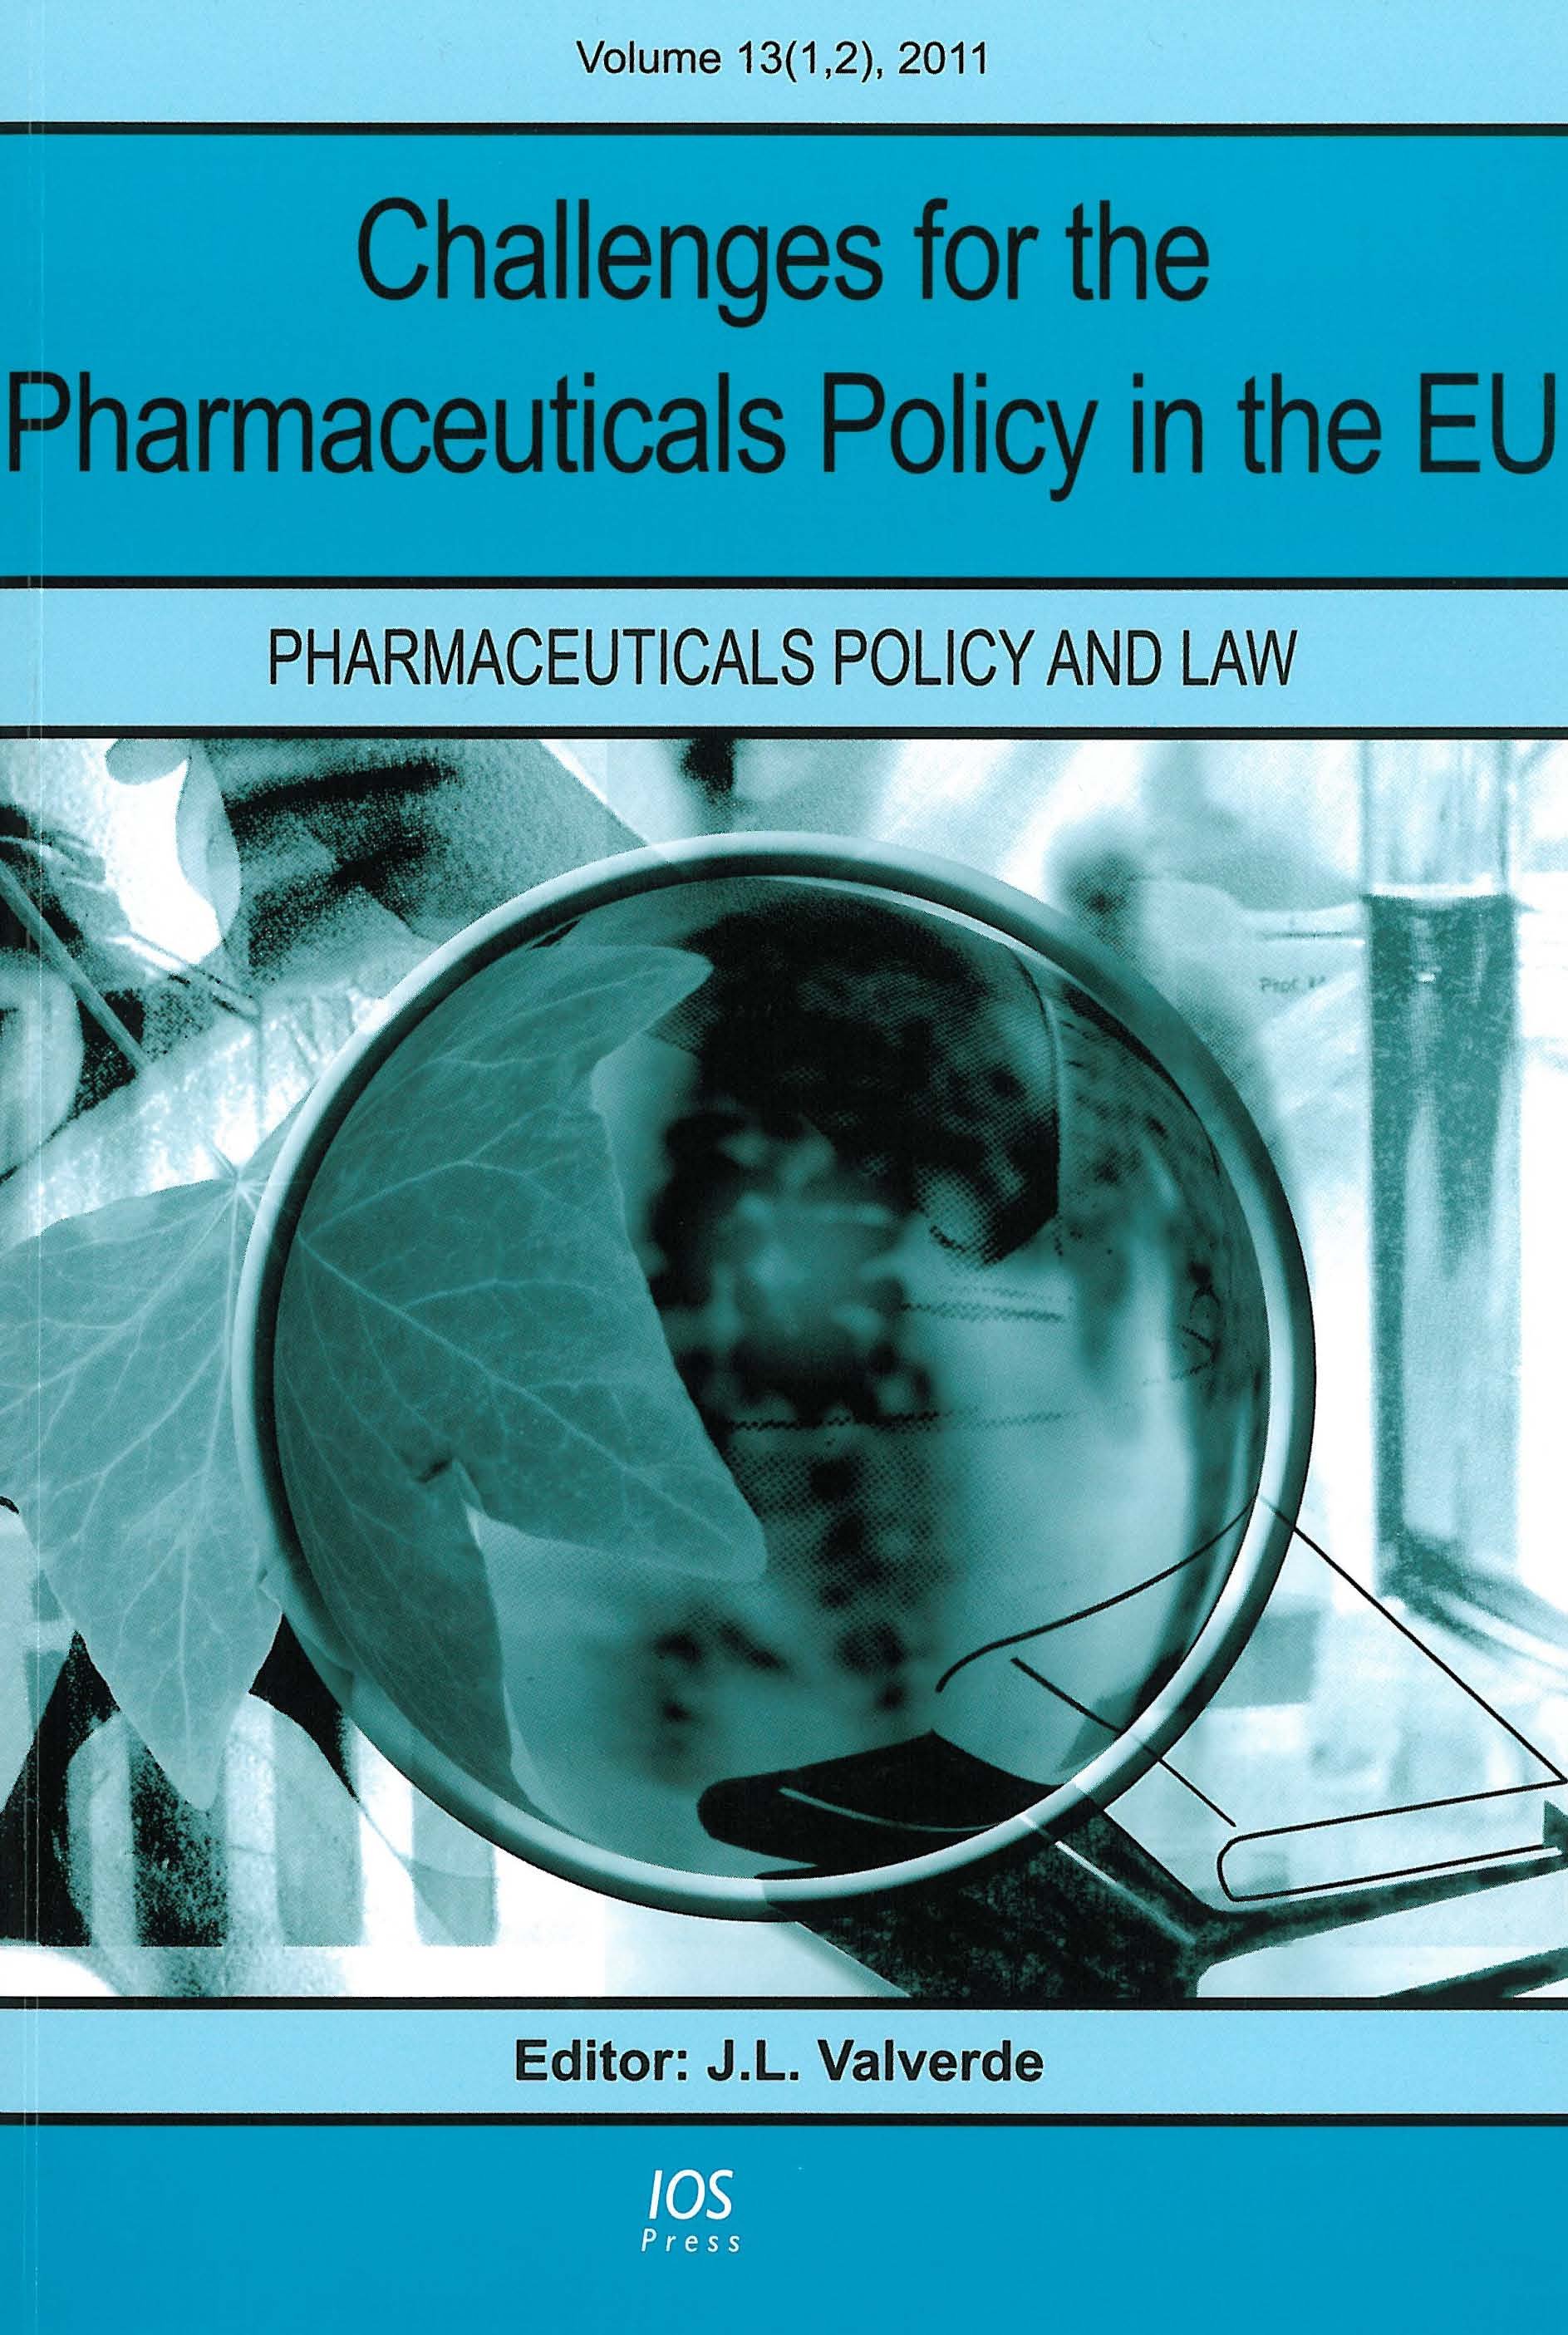 Challenges for the Pharmaceuticals Policy in the EU